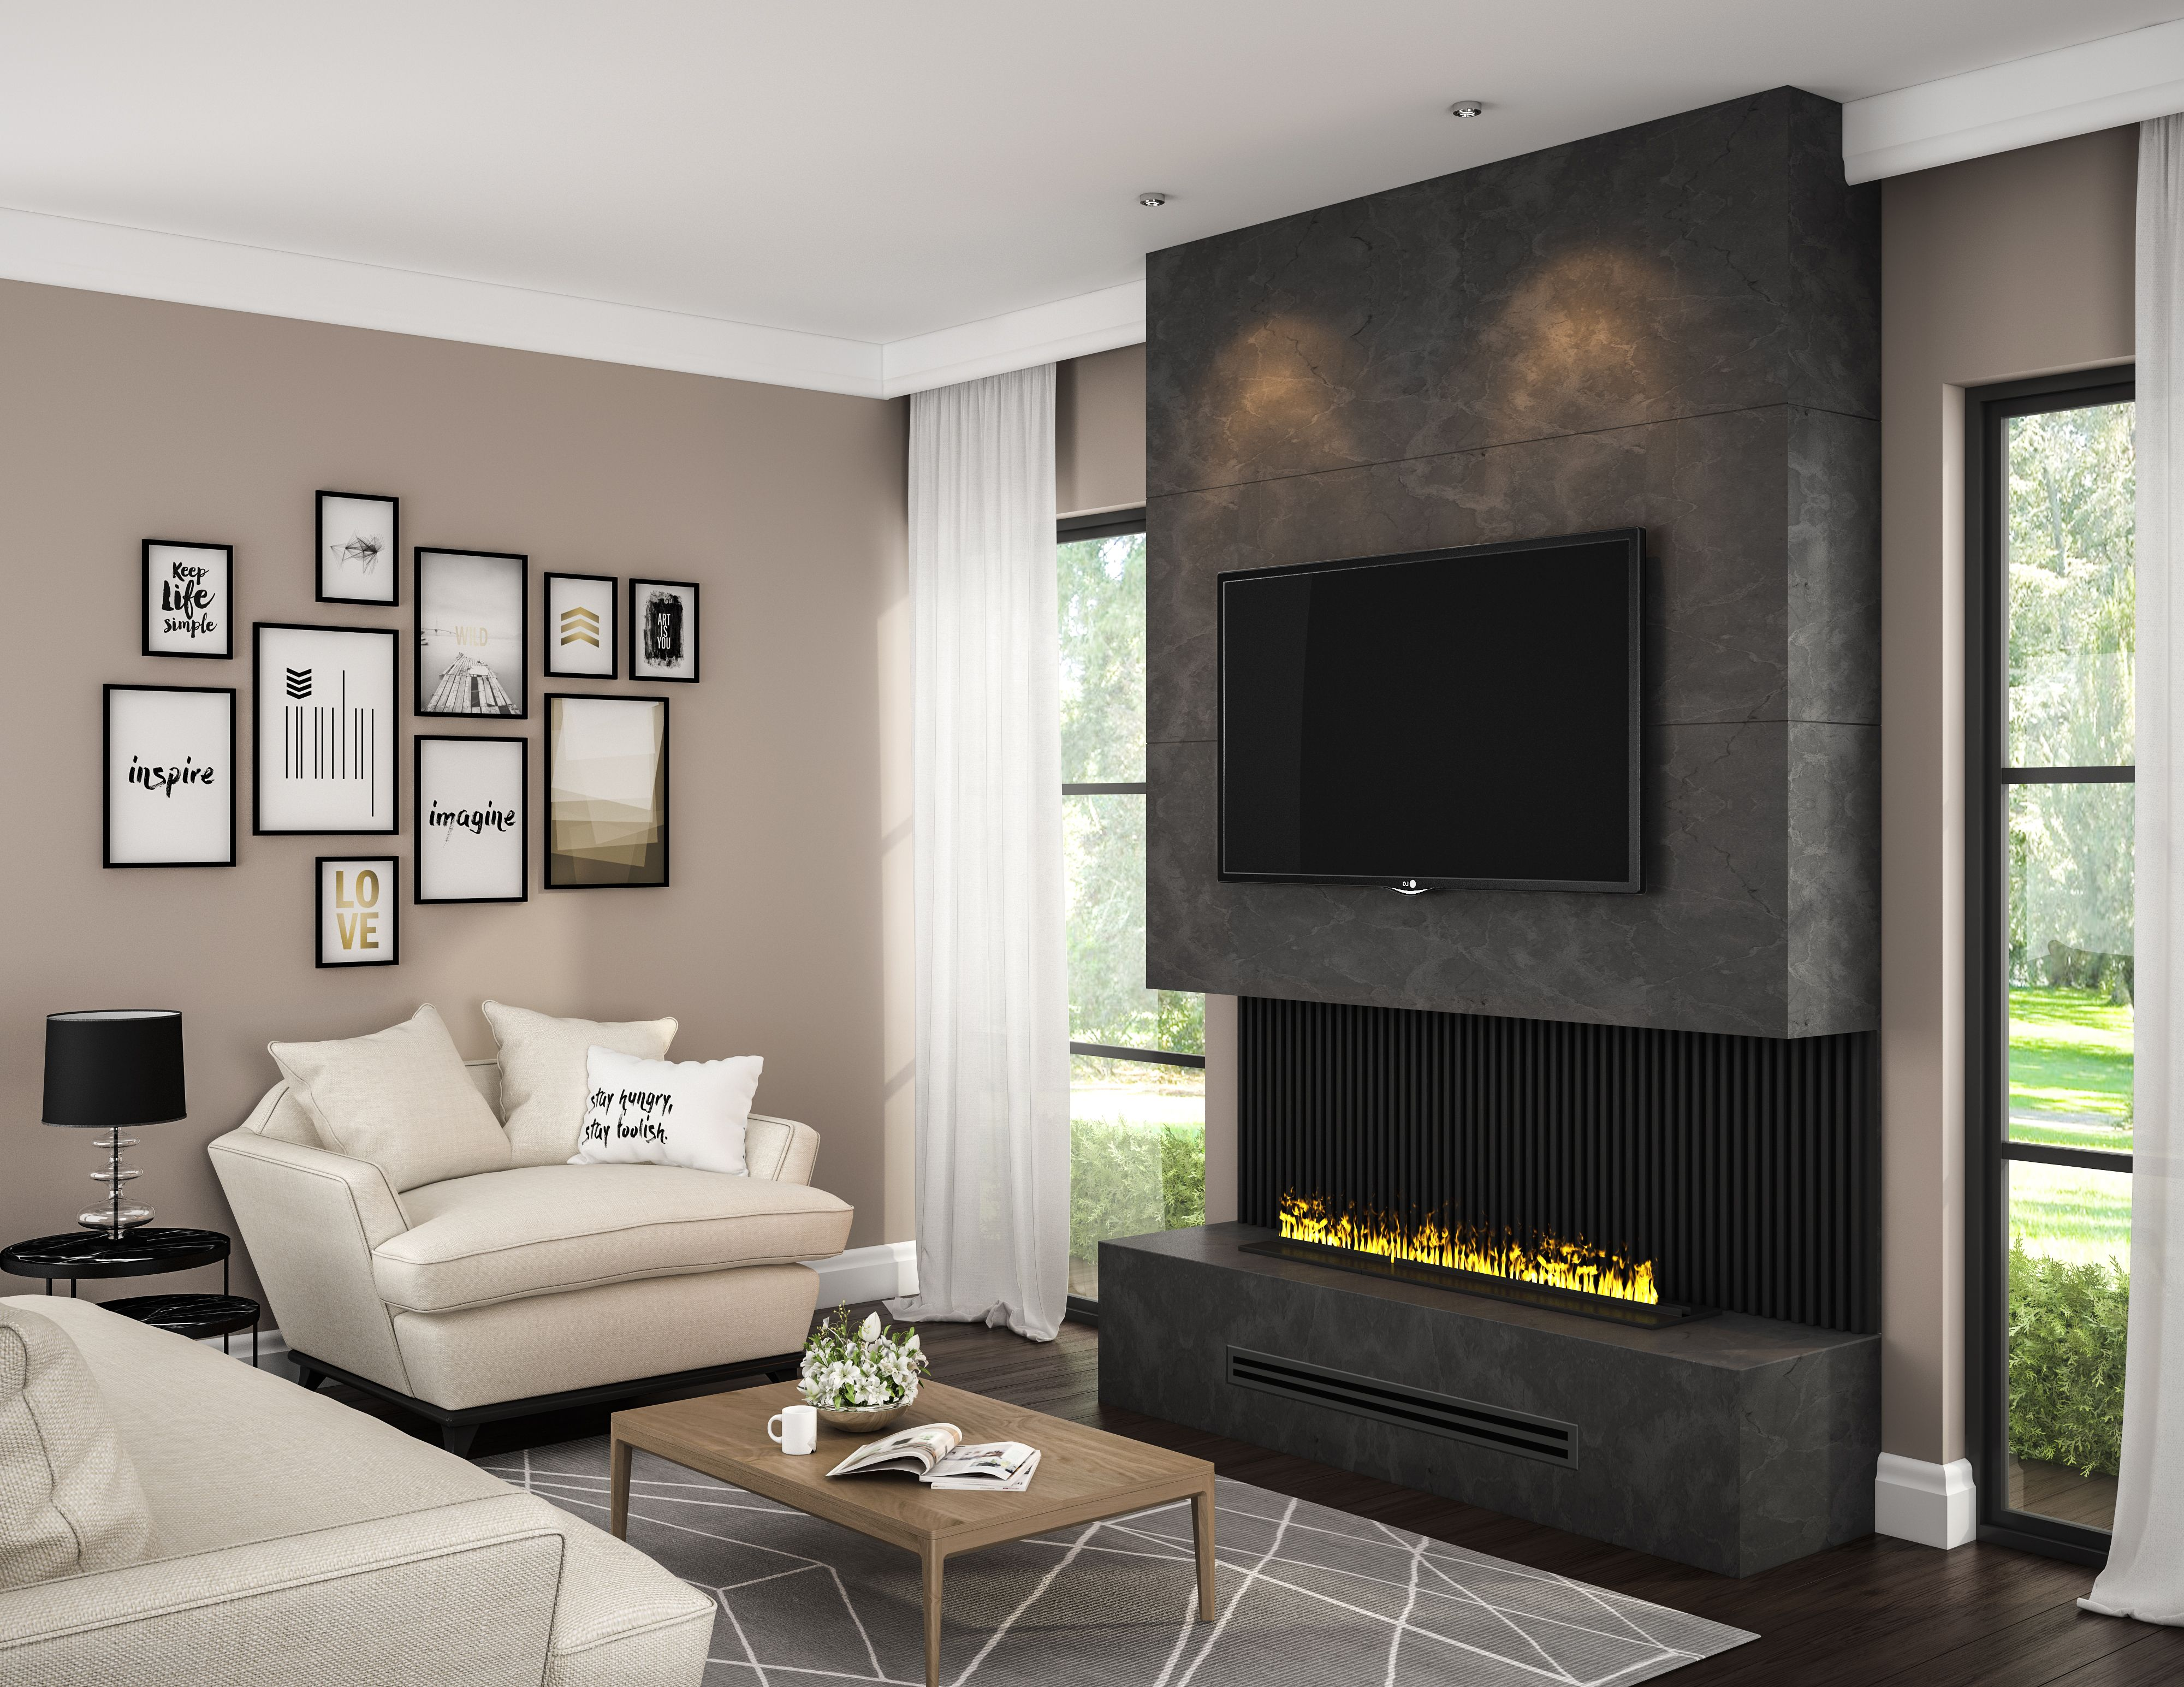 Anti Microbial Plastic Provides Worry Free Operation Of Opti Myst Electric Fireplaces The Dimplex Blog In 2021 Dimplex Contemporary Fireplace Fireplace Stores